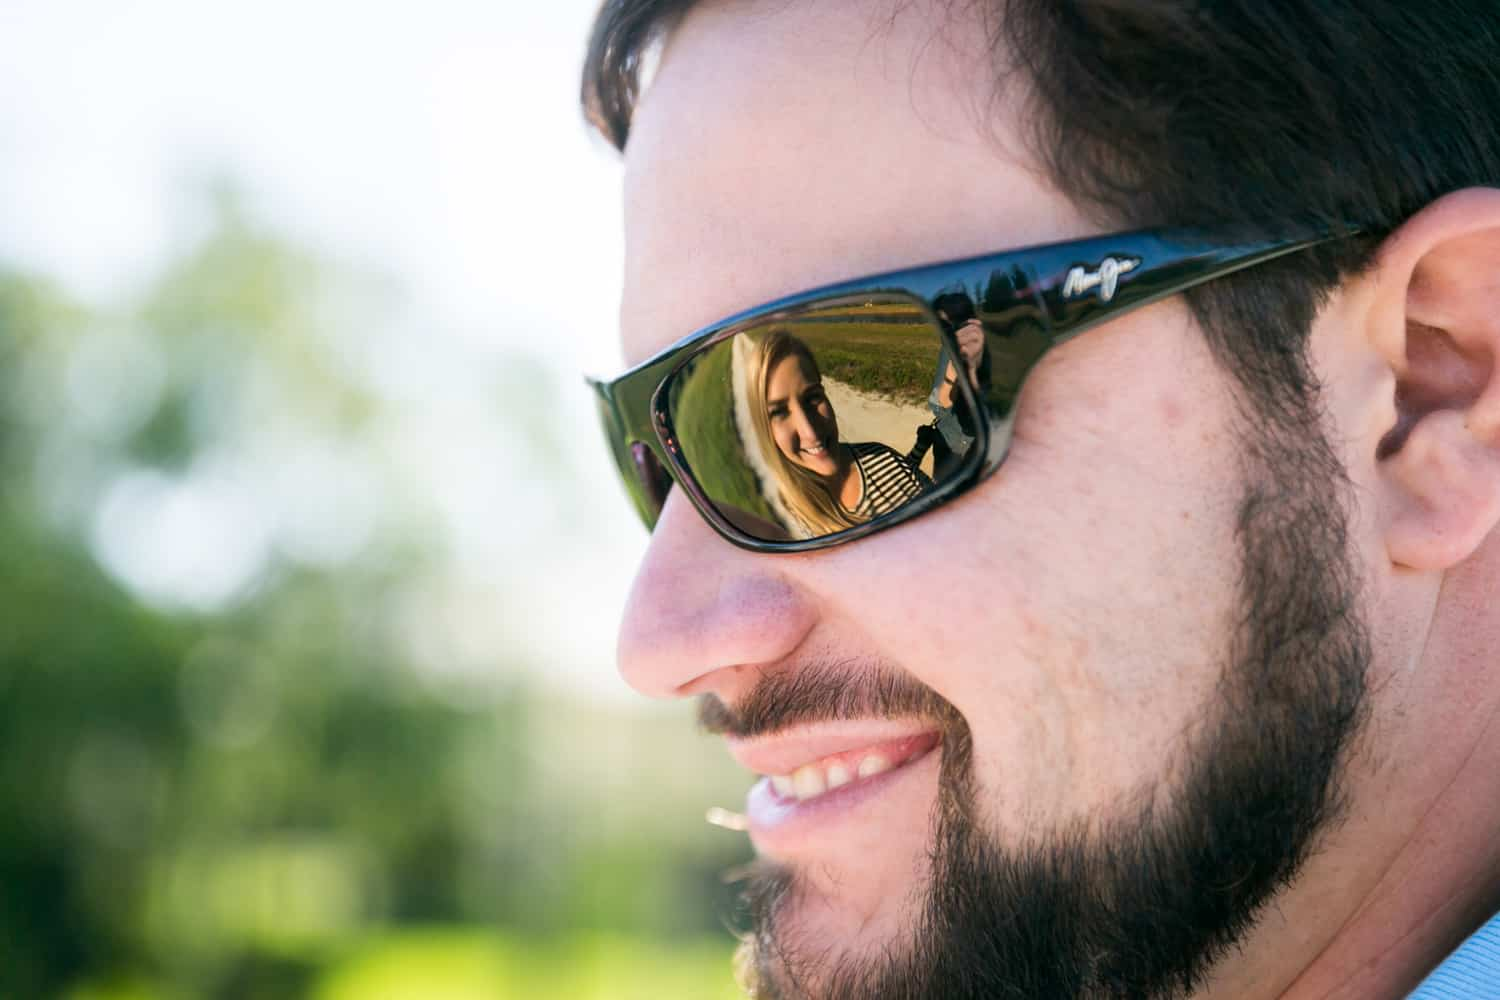 Woman reflected in man's sunglasses